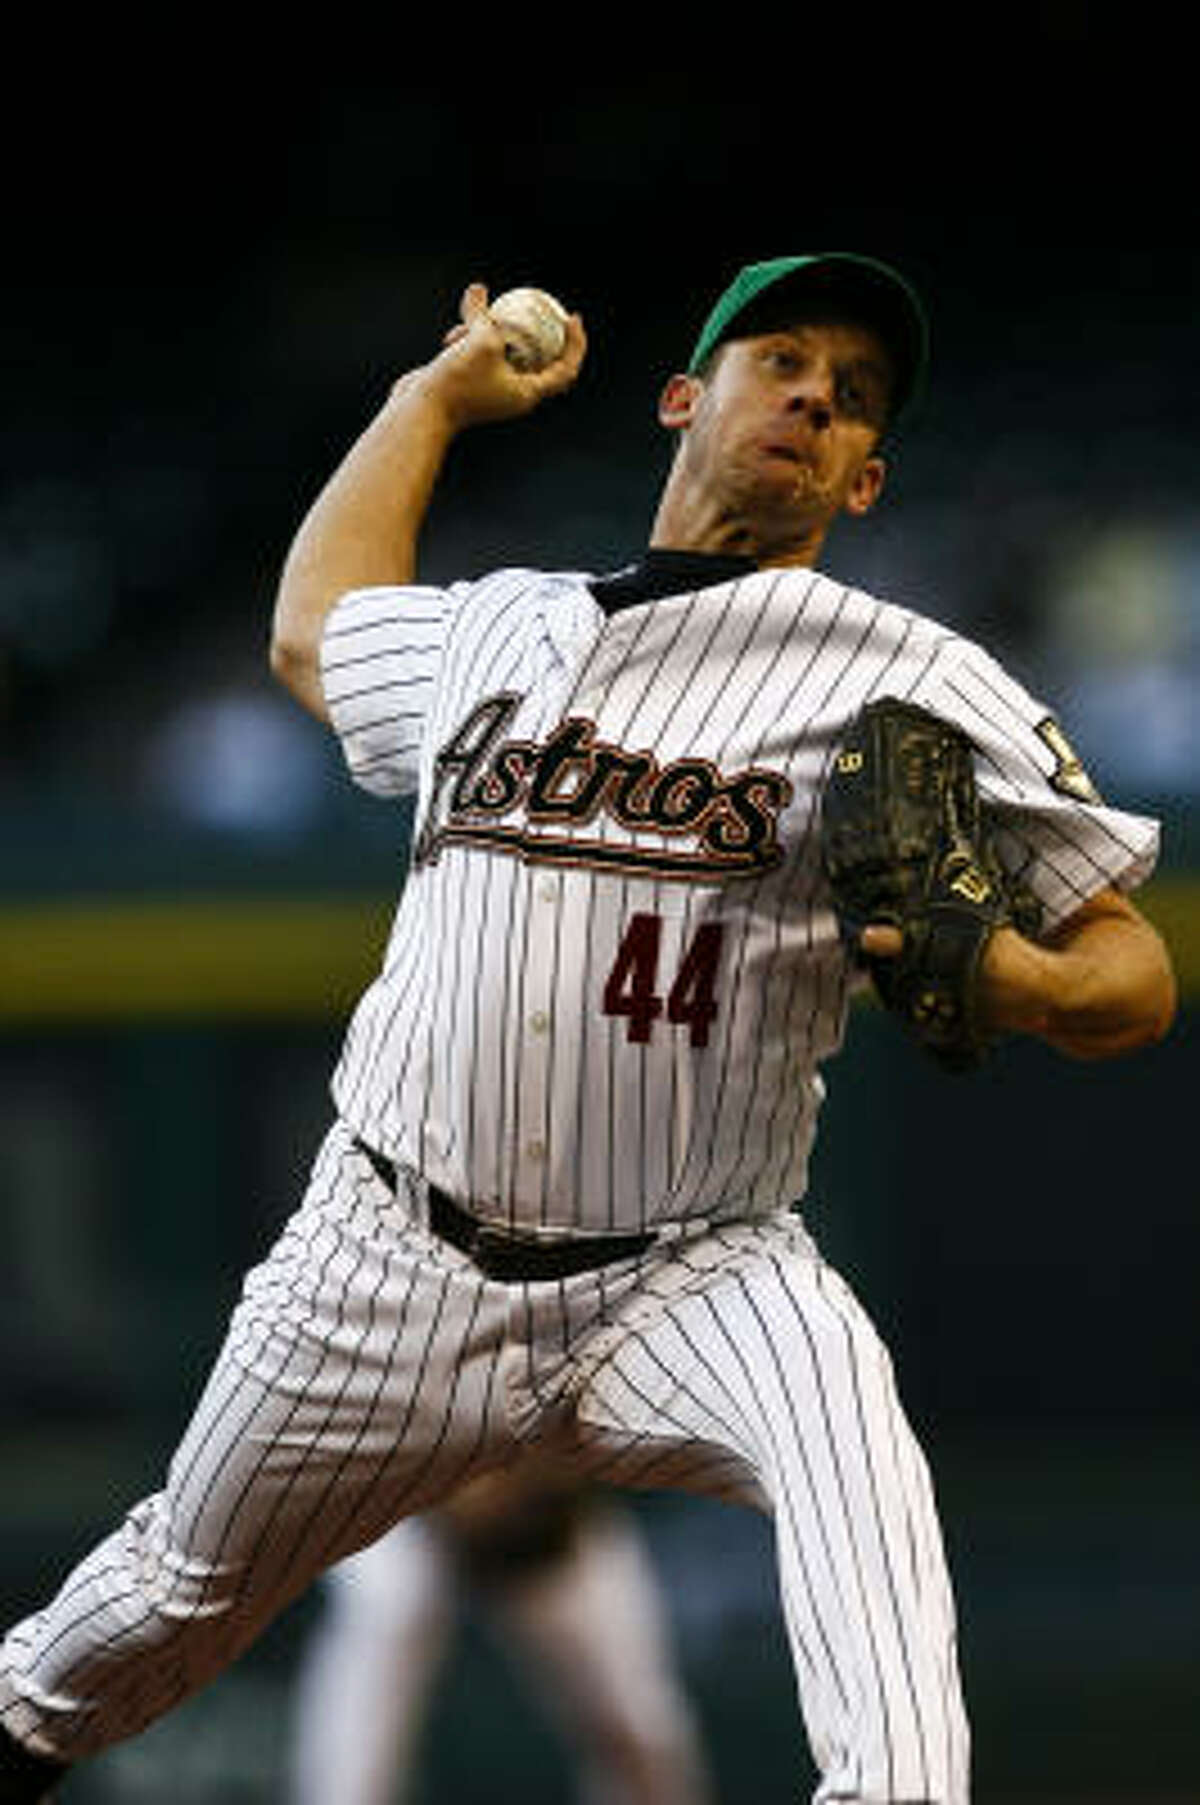 Astros starting pitcher Roy Oswalt throws a pitch during the first inning.